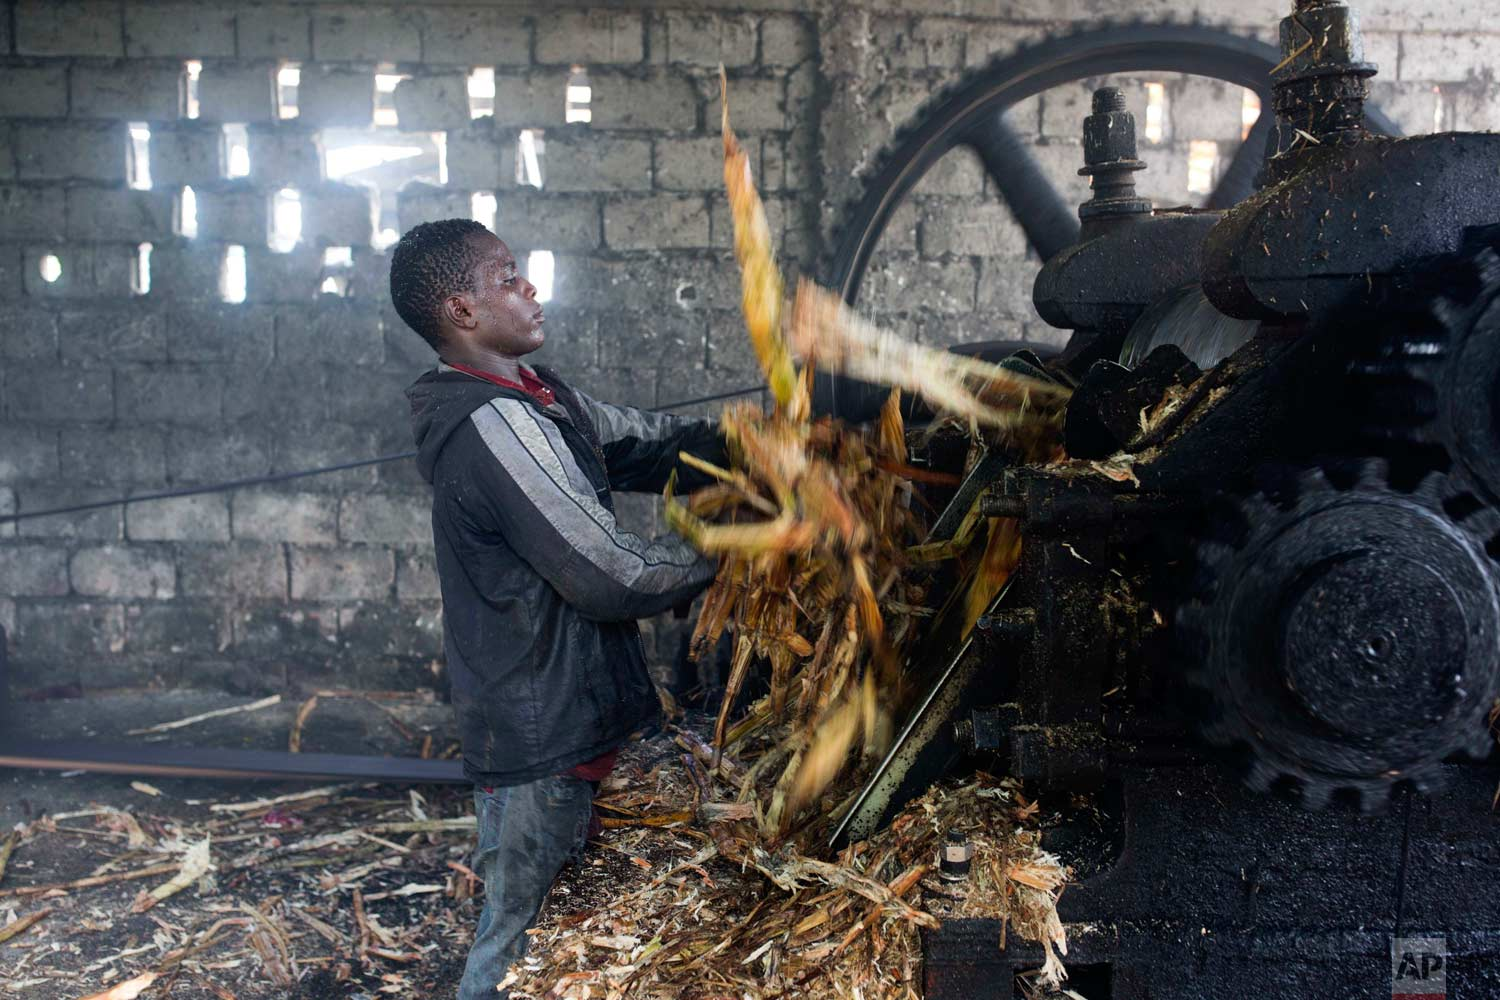 In this June 16, 2017 photo, Metson Pierre removes bagasse, fiber left over after pressing juice from sugar cane, from a grinding machine at the Ti Jean distillery where a sugar-based alcoholic drink called clairin is made in Leogane, Haiti. The 17-year-old, who was missing school, said he works to support himself after the death of his parents. (AP Photo/Dieu Nalio Chery)